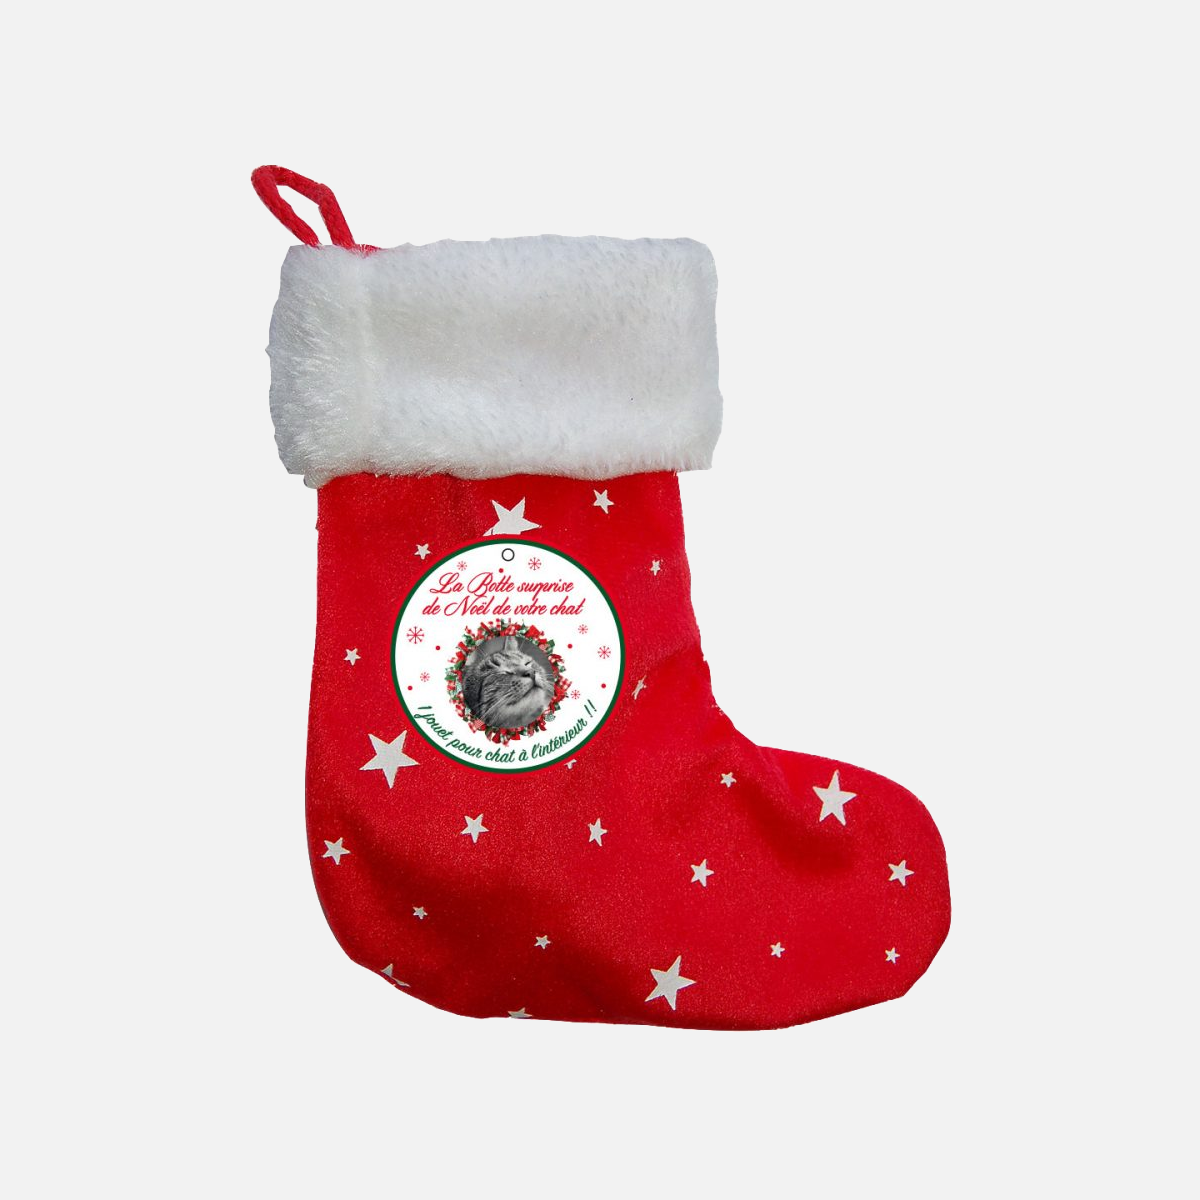 Botte surprise chat de noel par wouapy